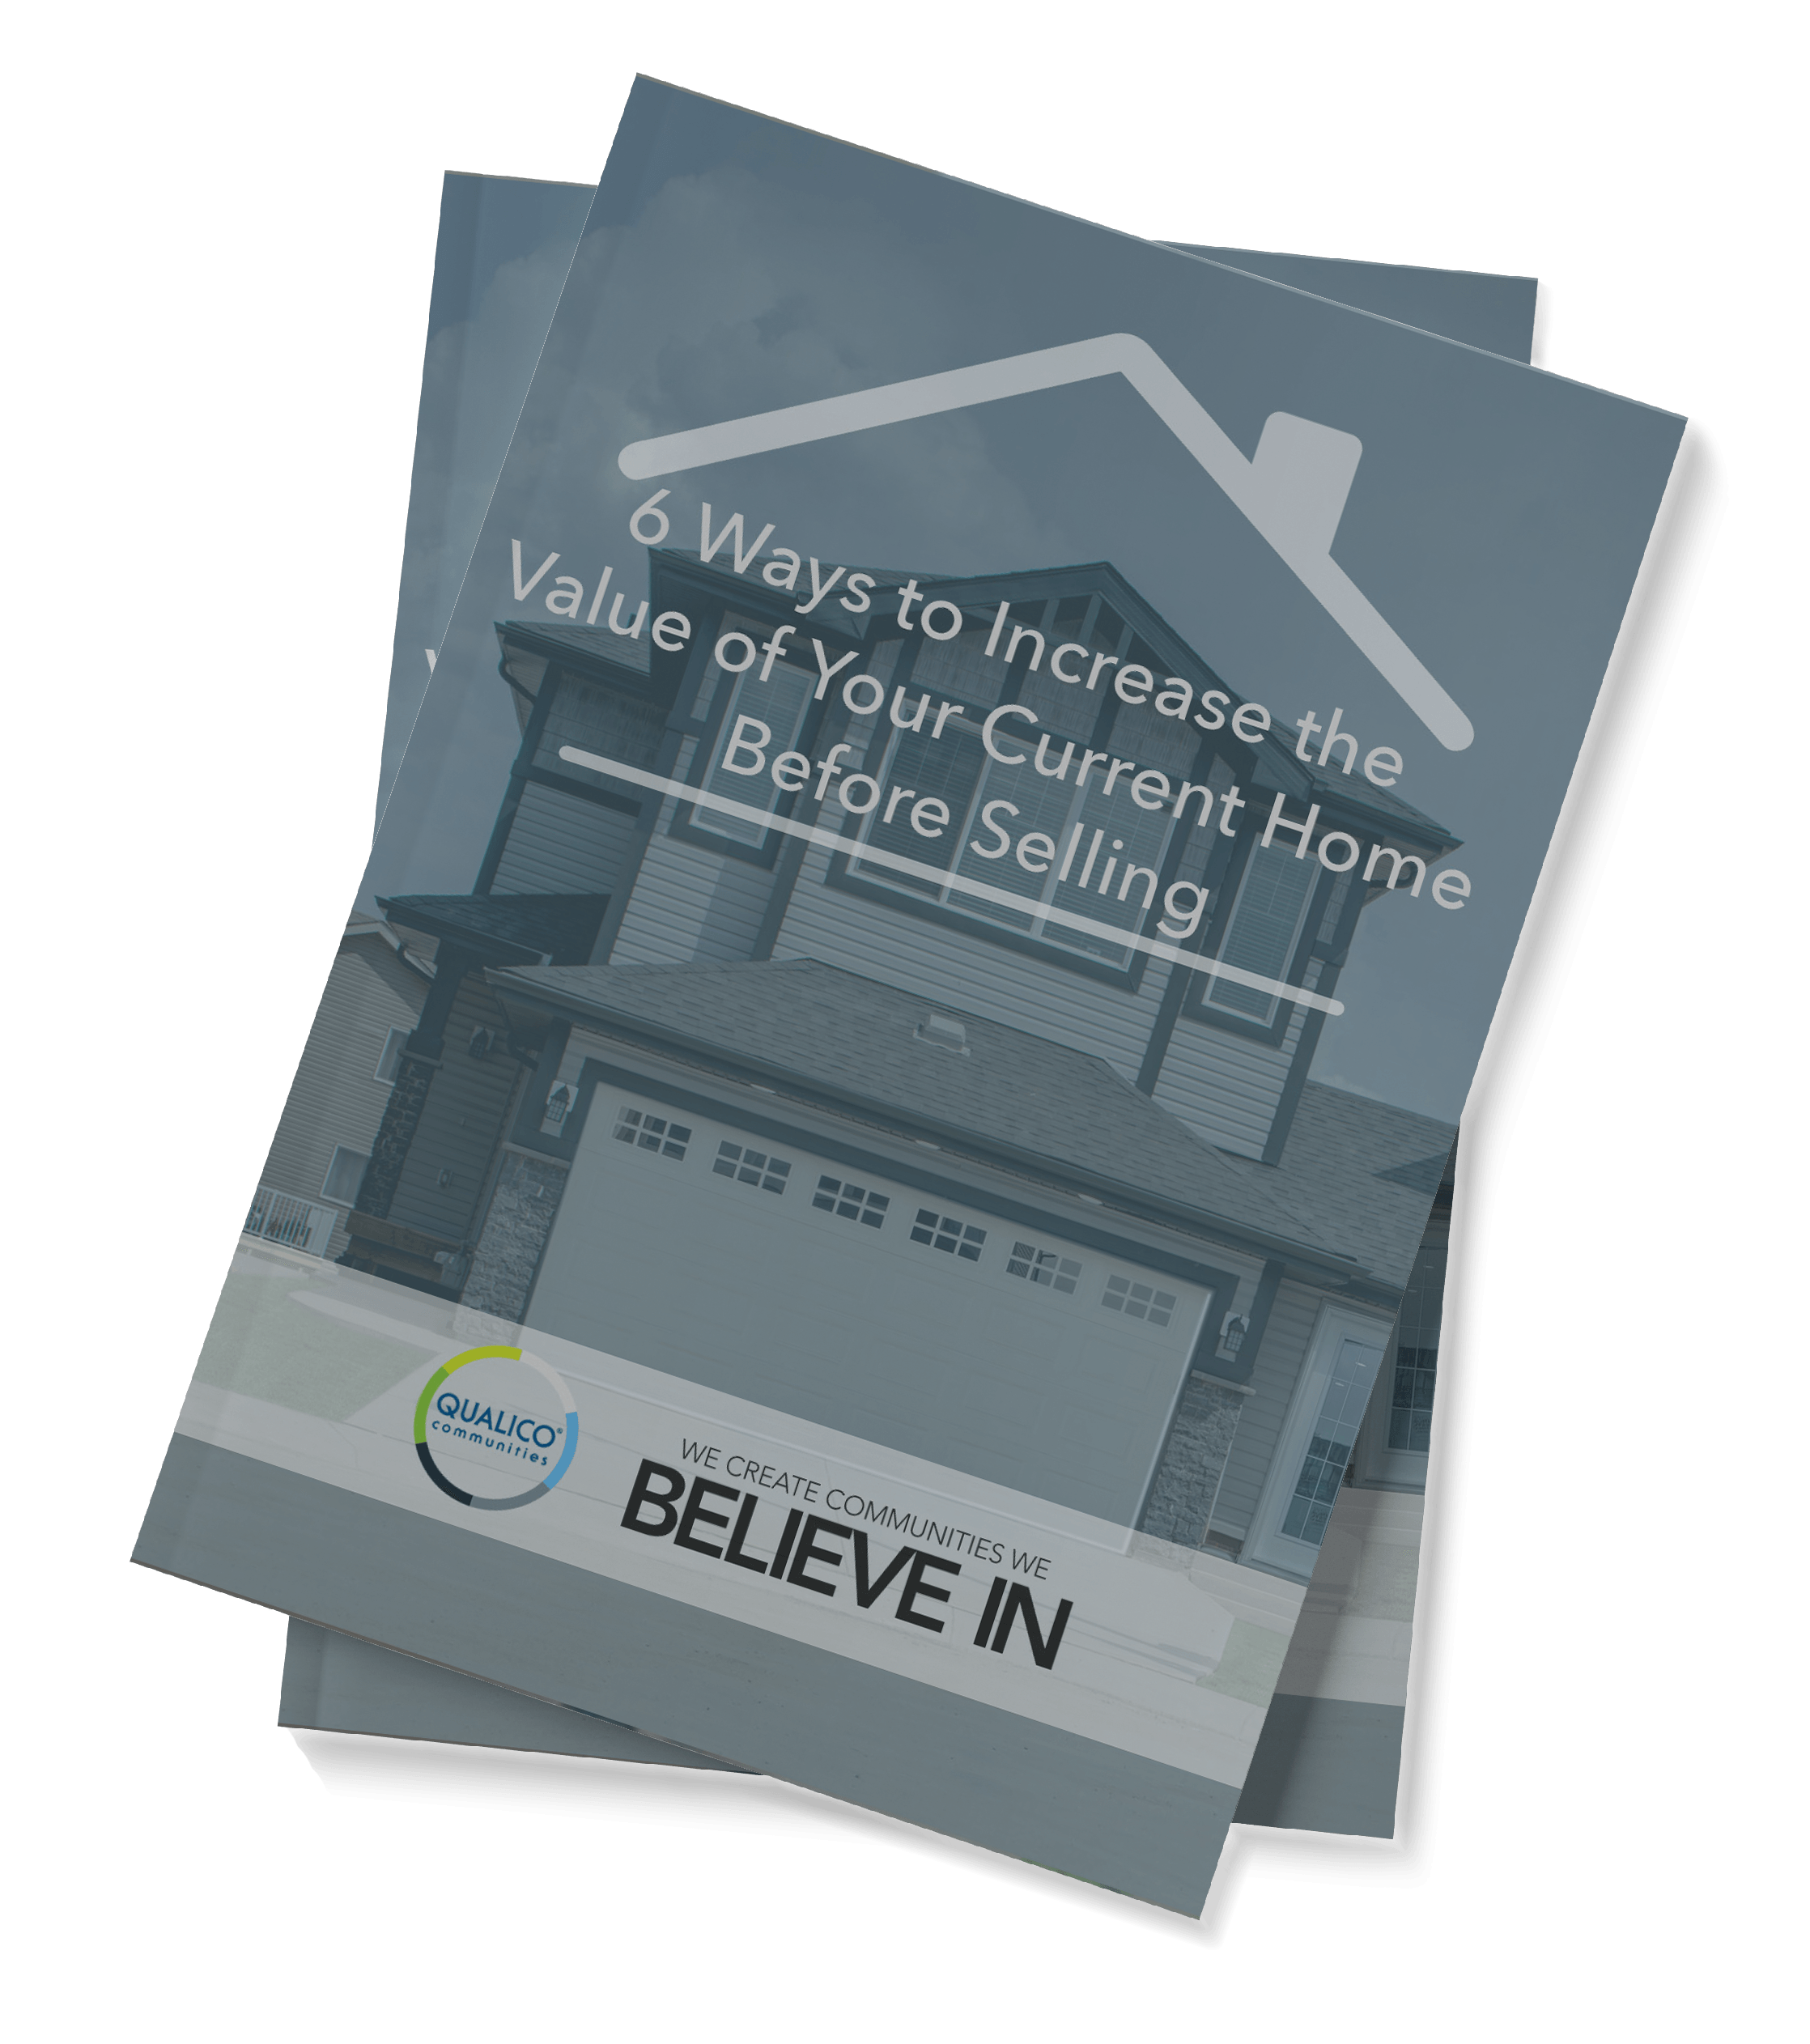 6-ways-increase-value-current-home-before-selling-cover-image